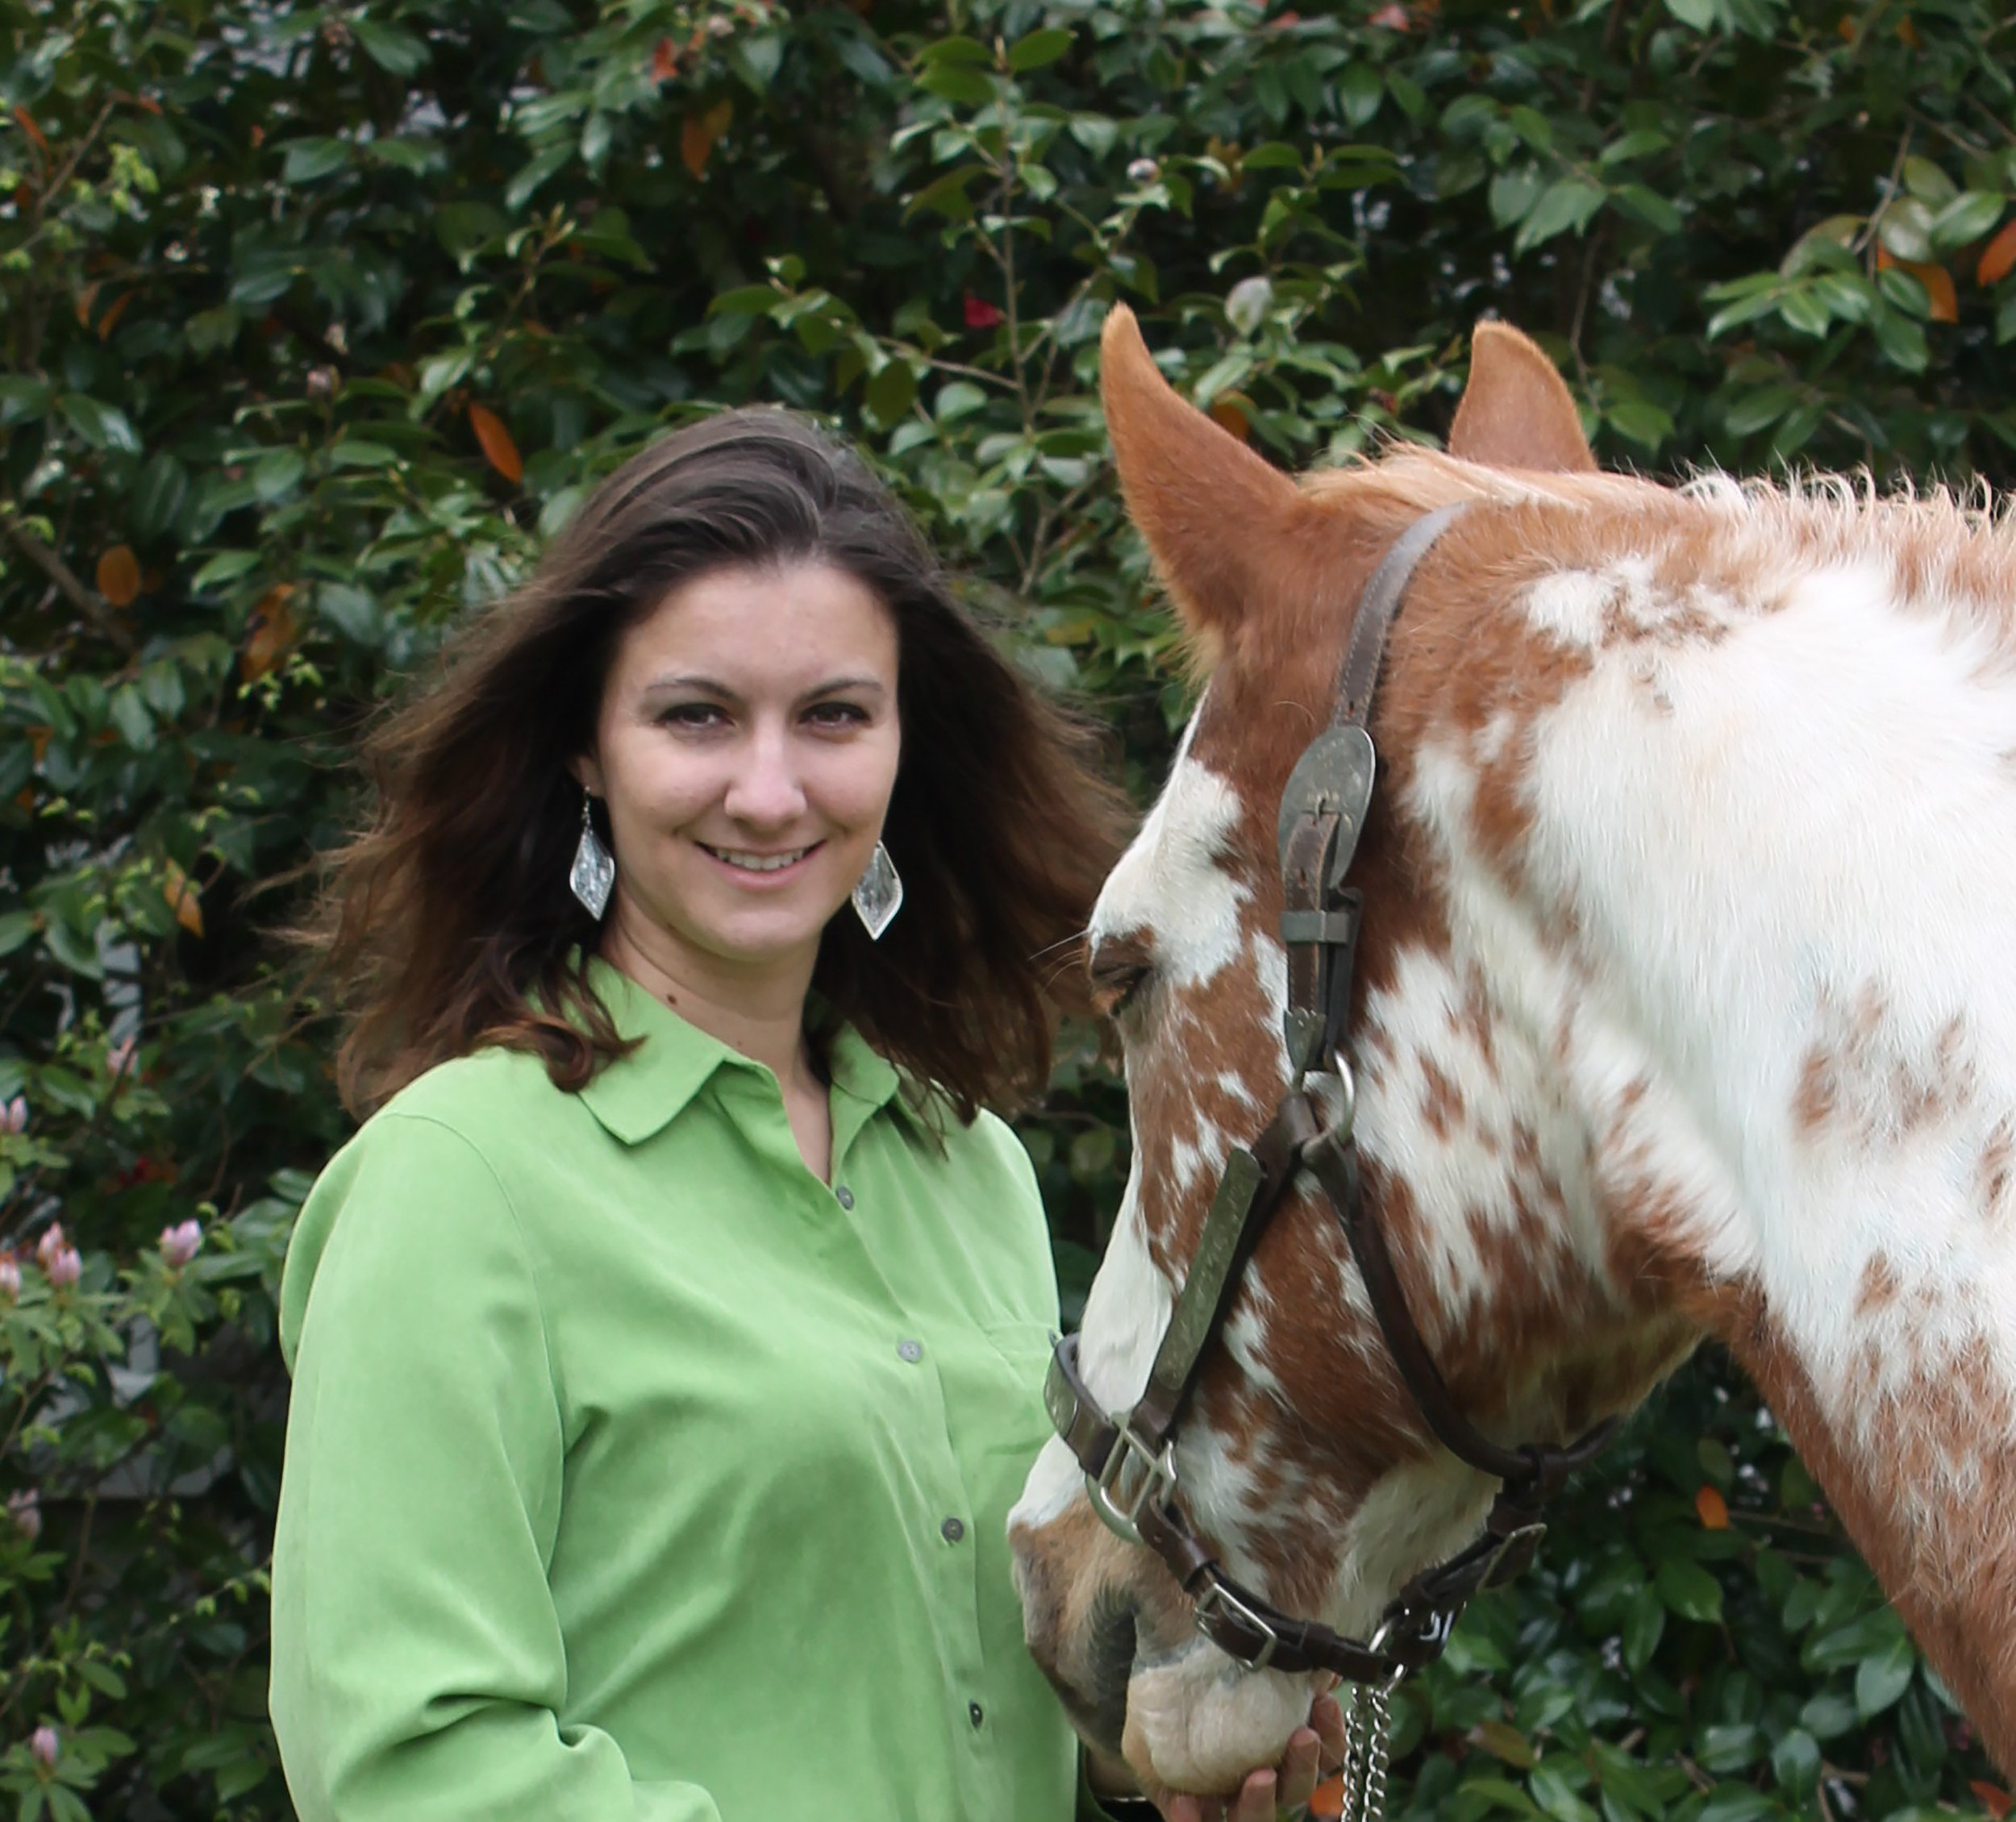 Misty Beller, author, and her horse.